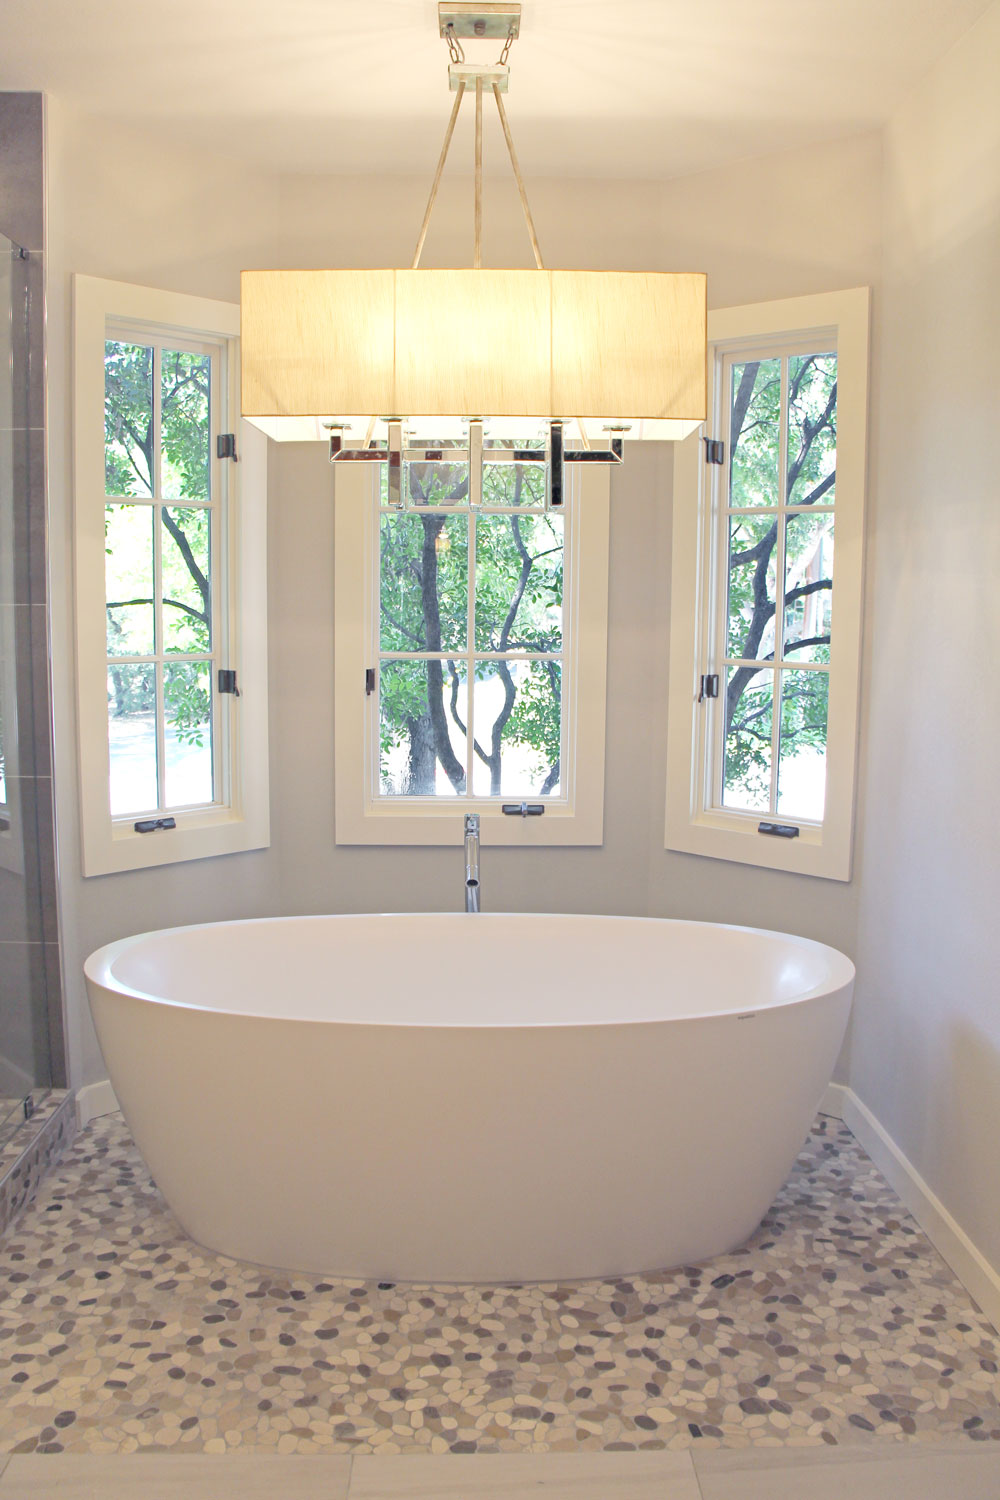 Liz-Light-Interiors-Bathroom-21.jpg